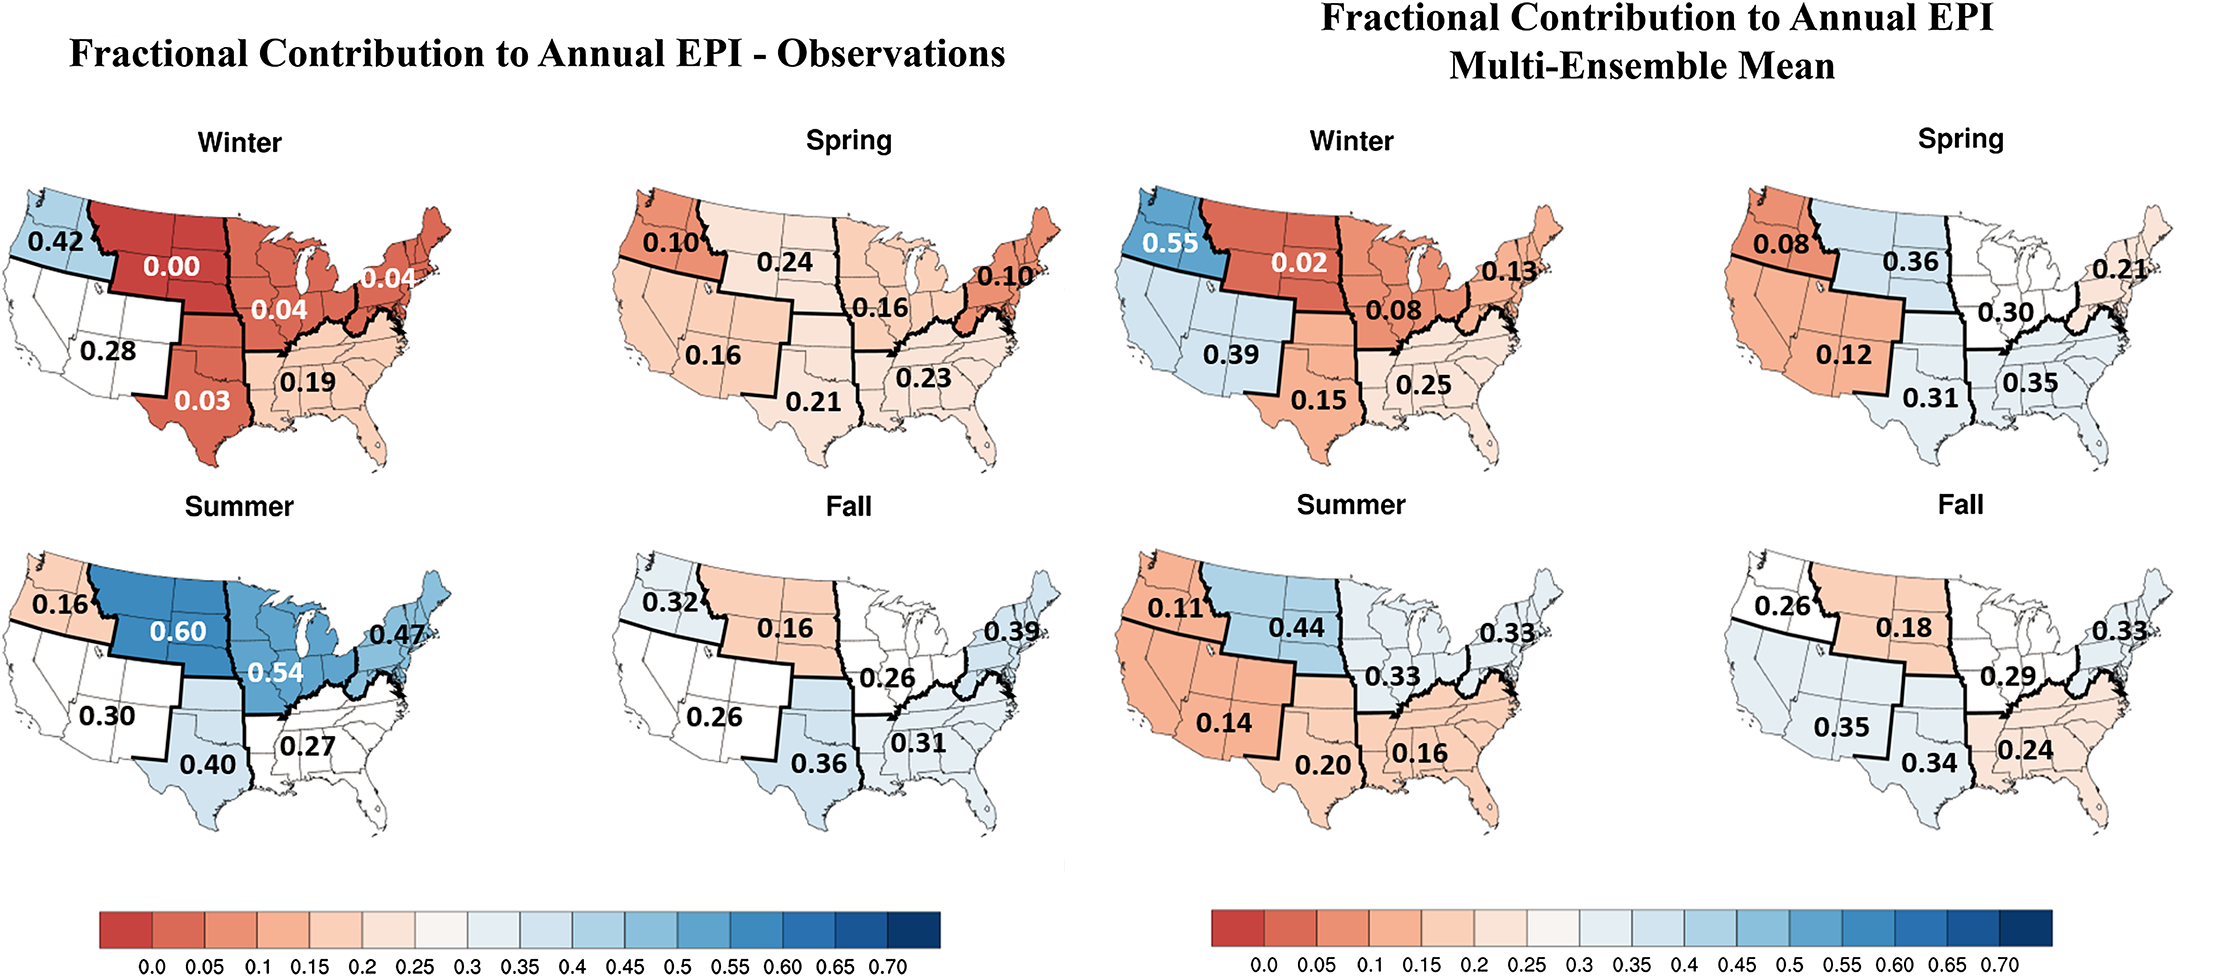 The two figures above display the average seasonal contribution for each region of United States to the average annual extreme precipitation index (EPI) of that area. The left figure shows observed EPI contributions for the period between 1901-2005 and the figure to right exhibits contributions simulated by CMIP5 models. Overall, CMIP5 simulations capture historical EPI contributions with reasonable accuracy, but mistakenly shift a portion of summer events into the spring and generally overestimate the EPI contributions for winter months.